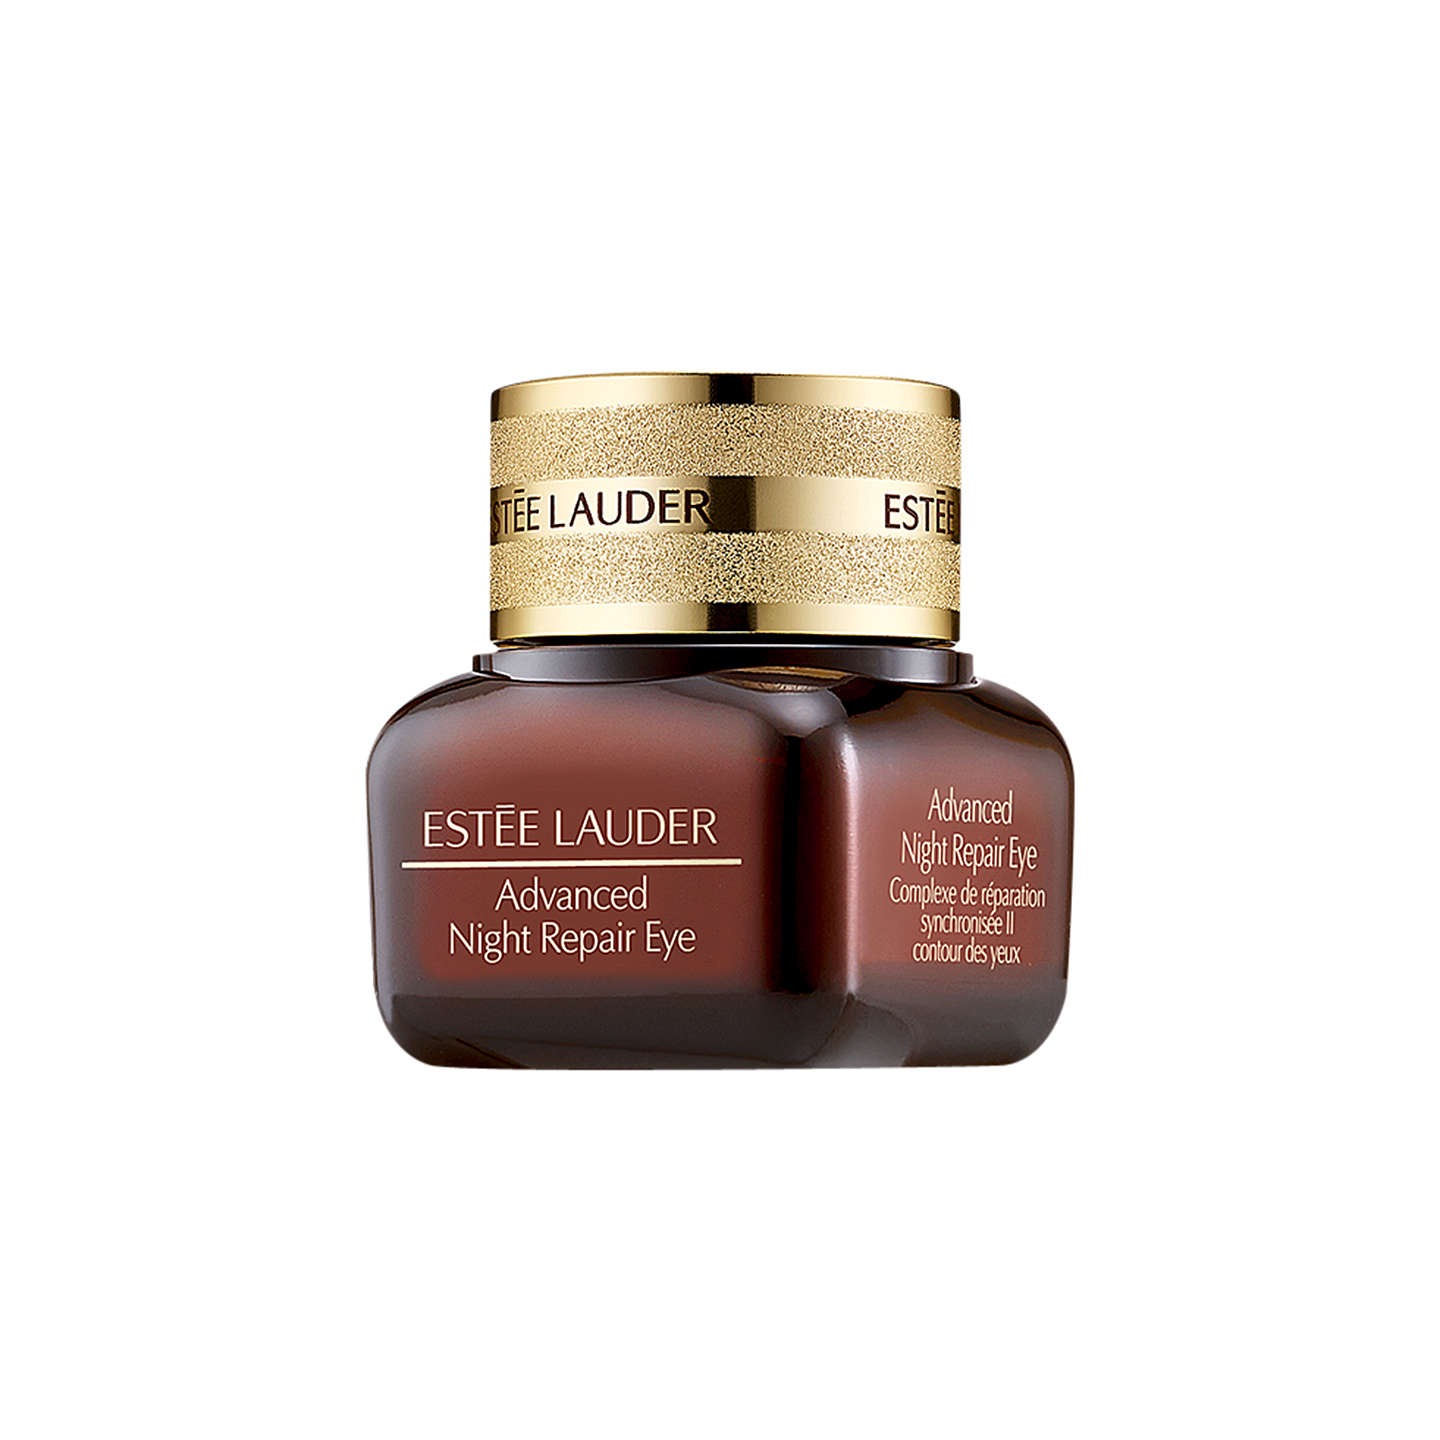 BuyEstée Lauder Advanced Night Repair Eye Synchronized Complex II, 15ml Online at johnlewis.com